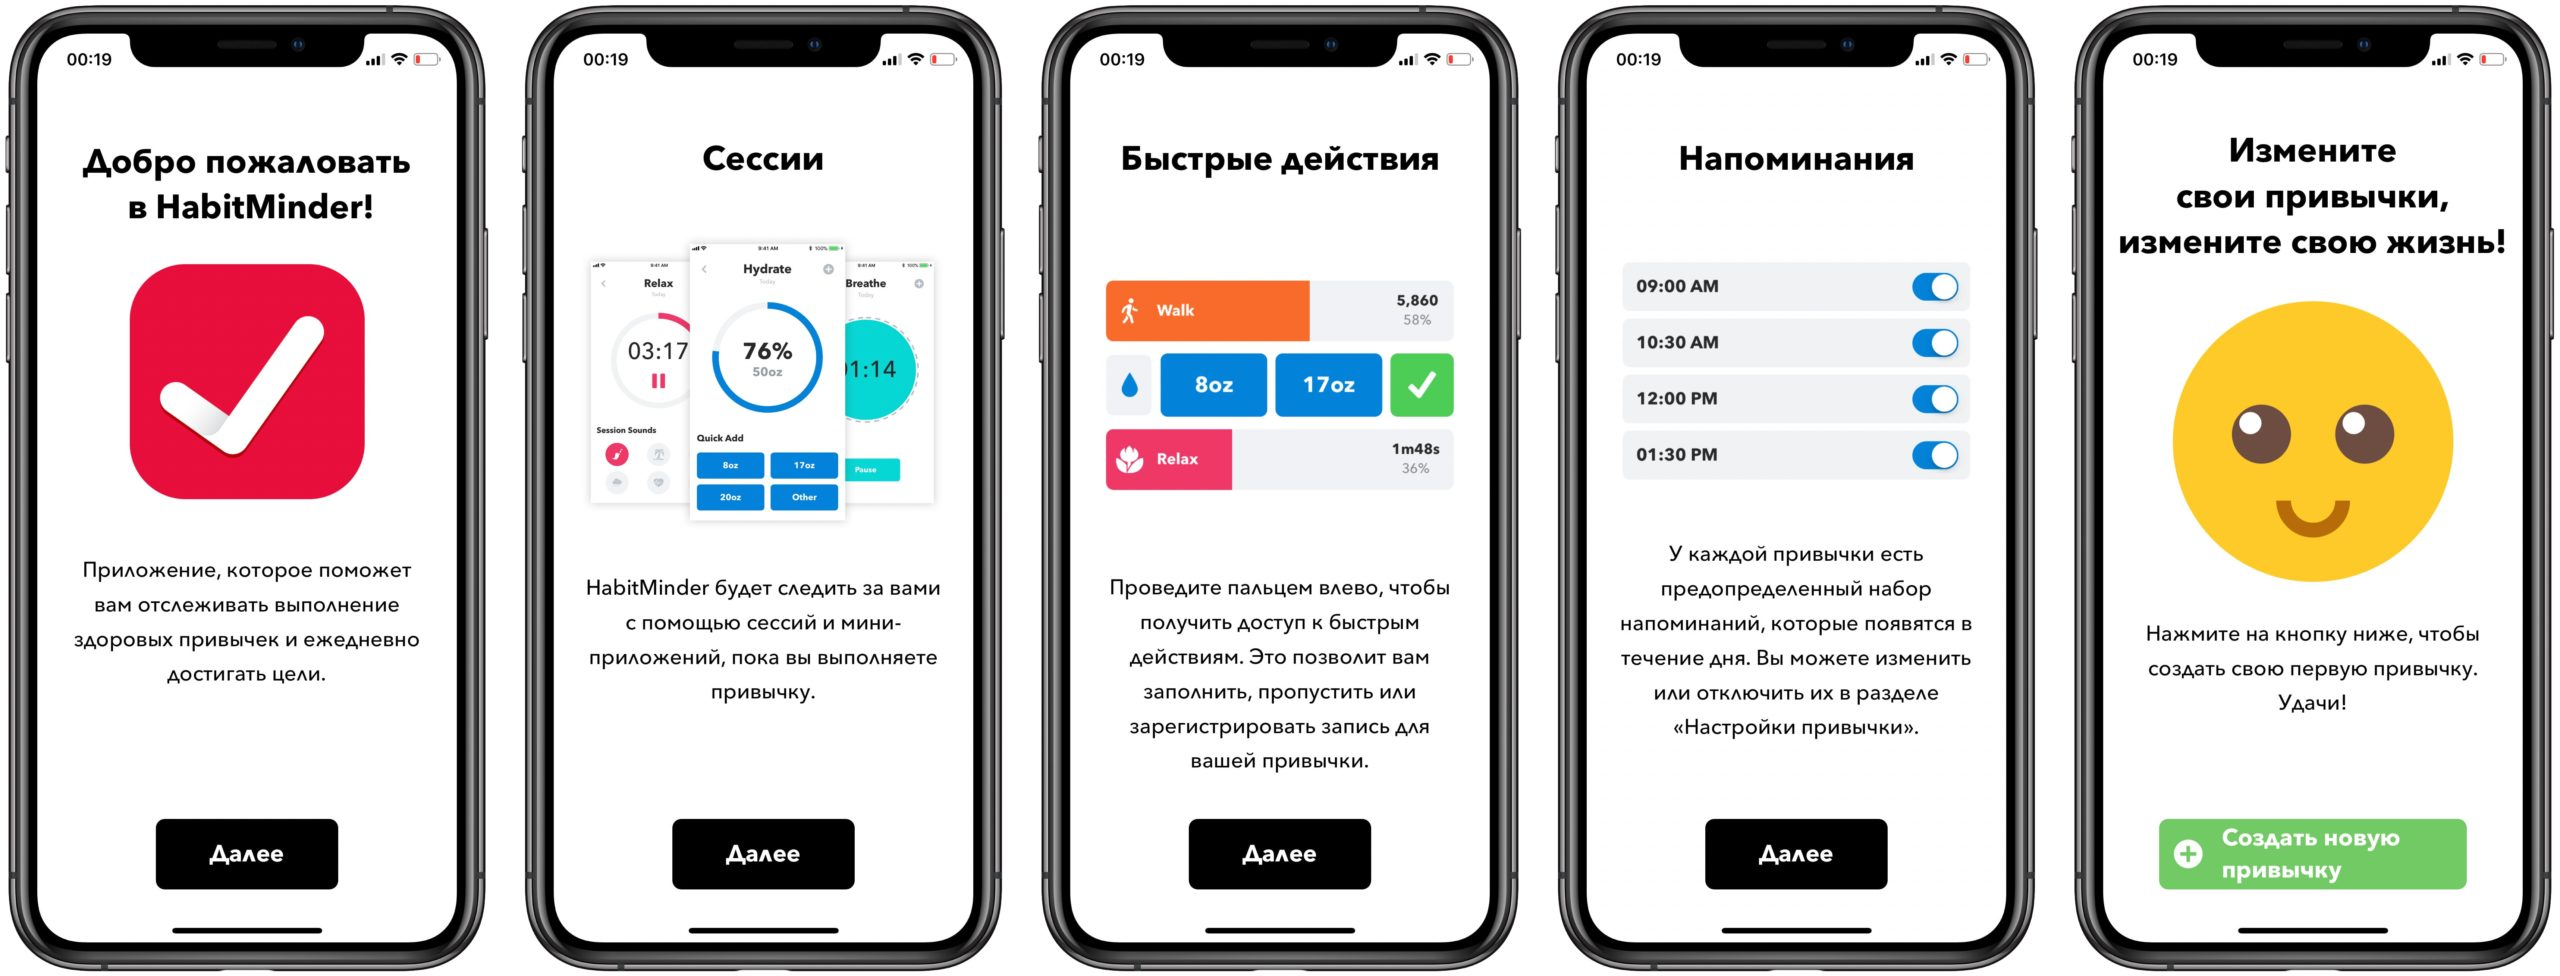 Обзор HabitMinder для iPhone, iPad, Mac, Apple Watch